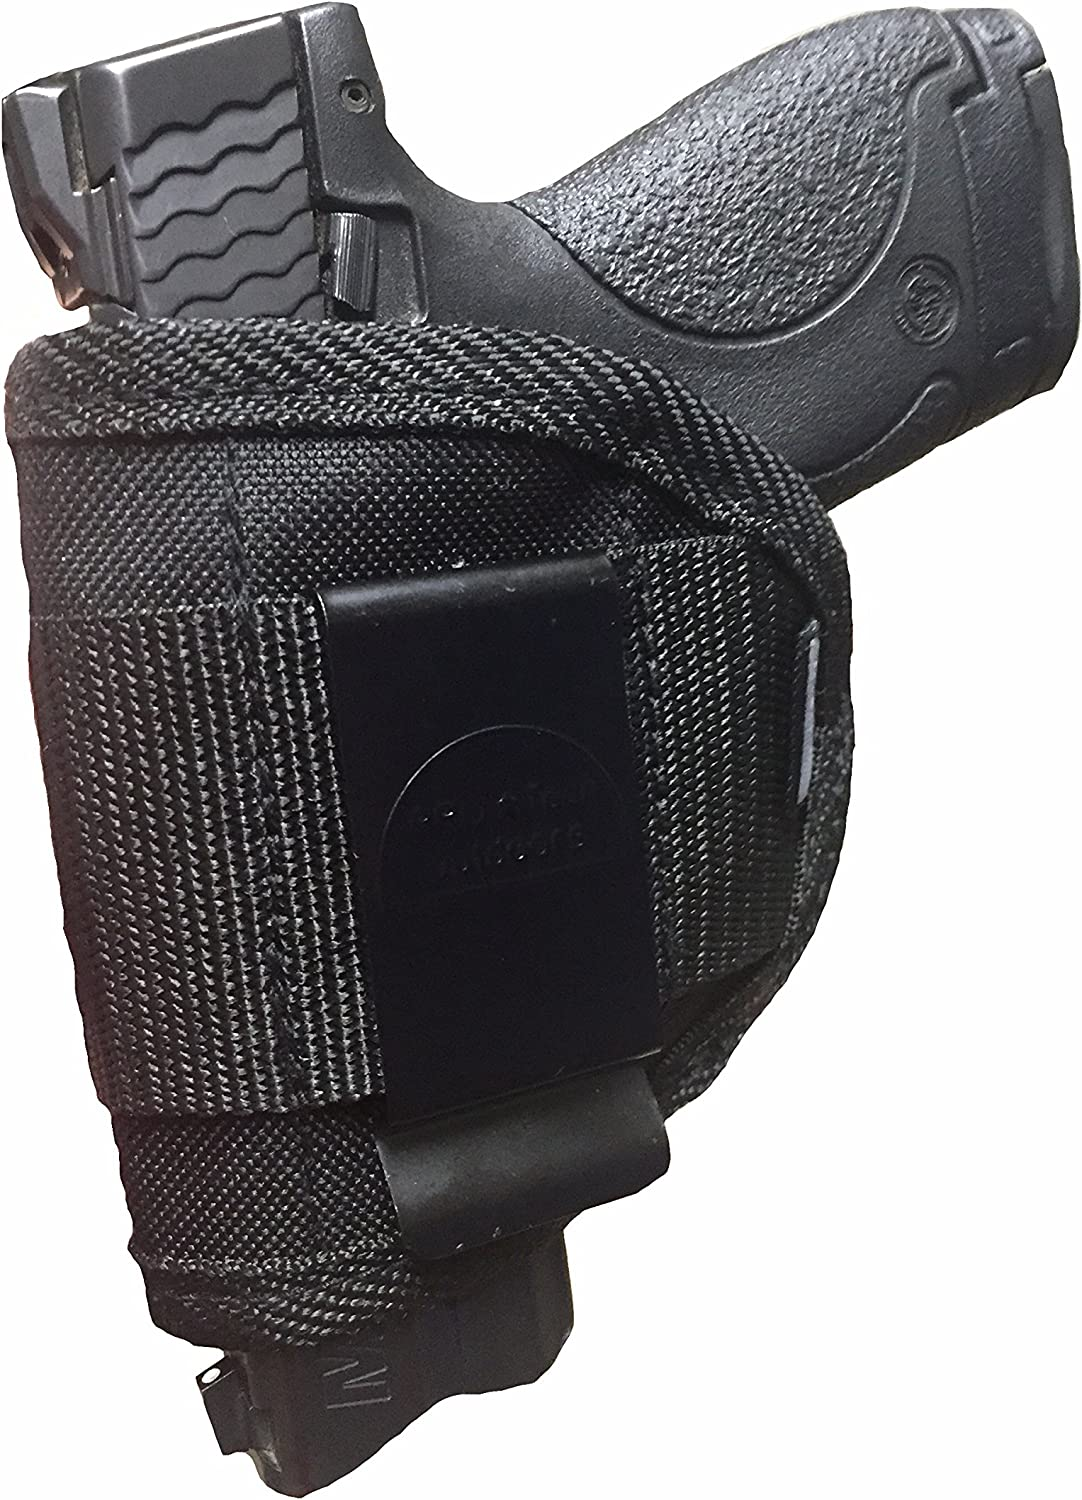 Pro-tech's Small of the Back Holster